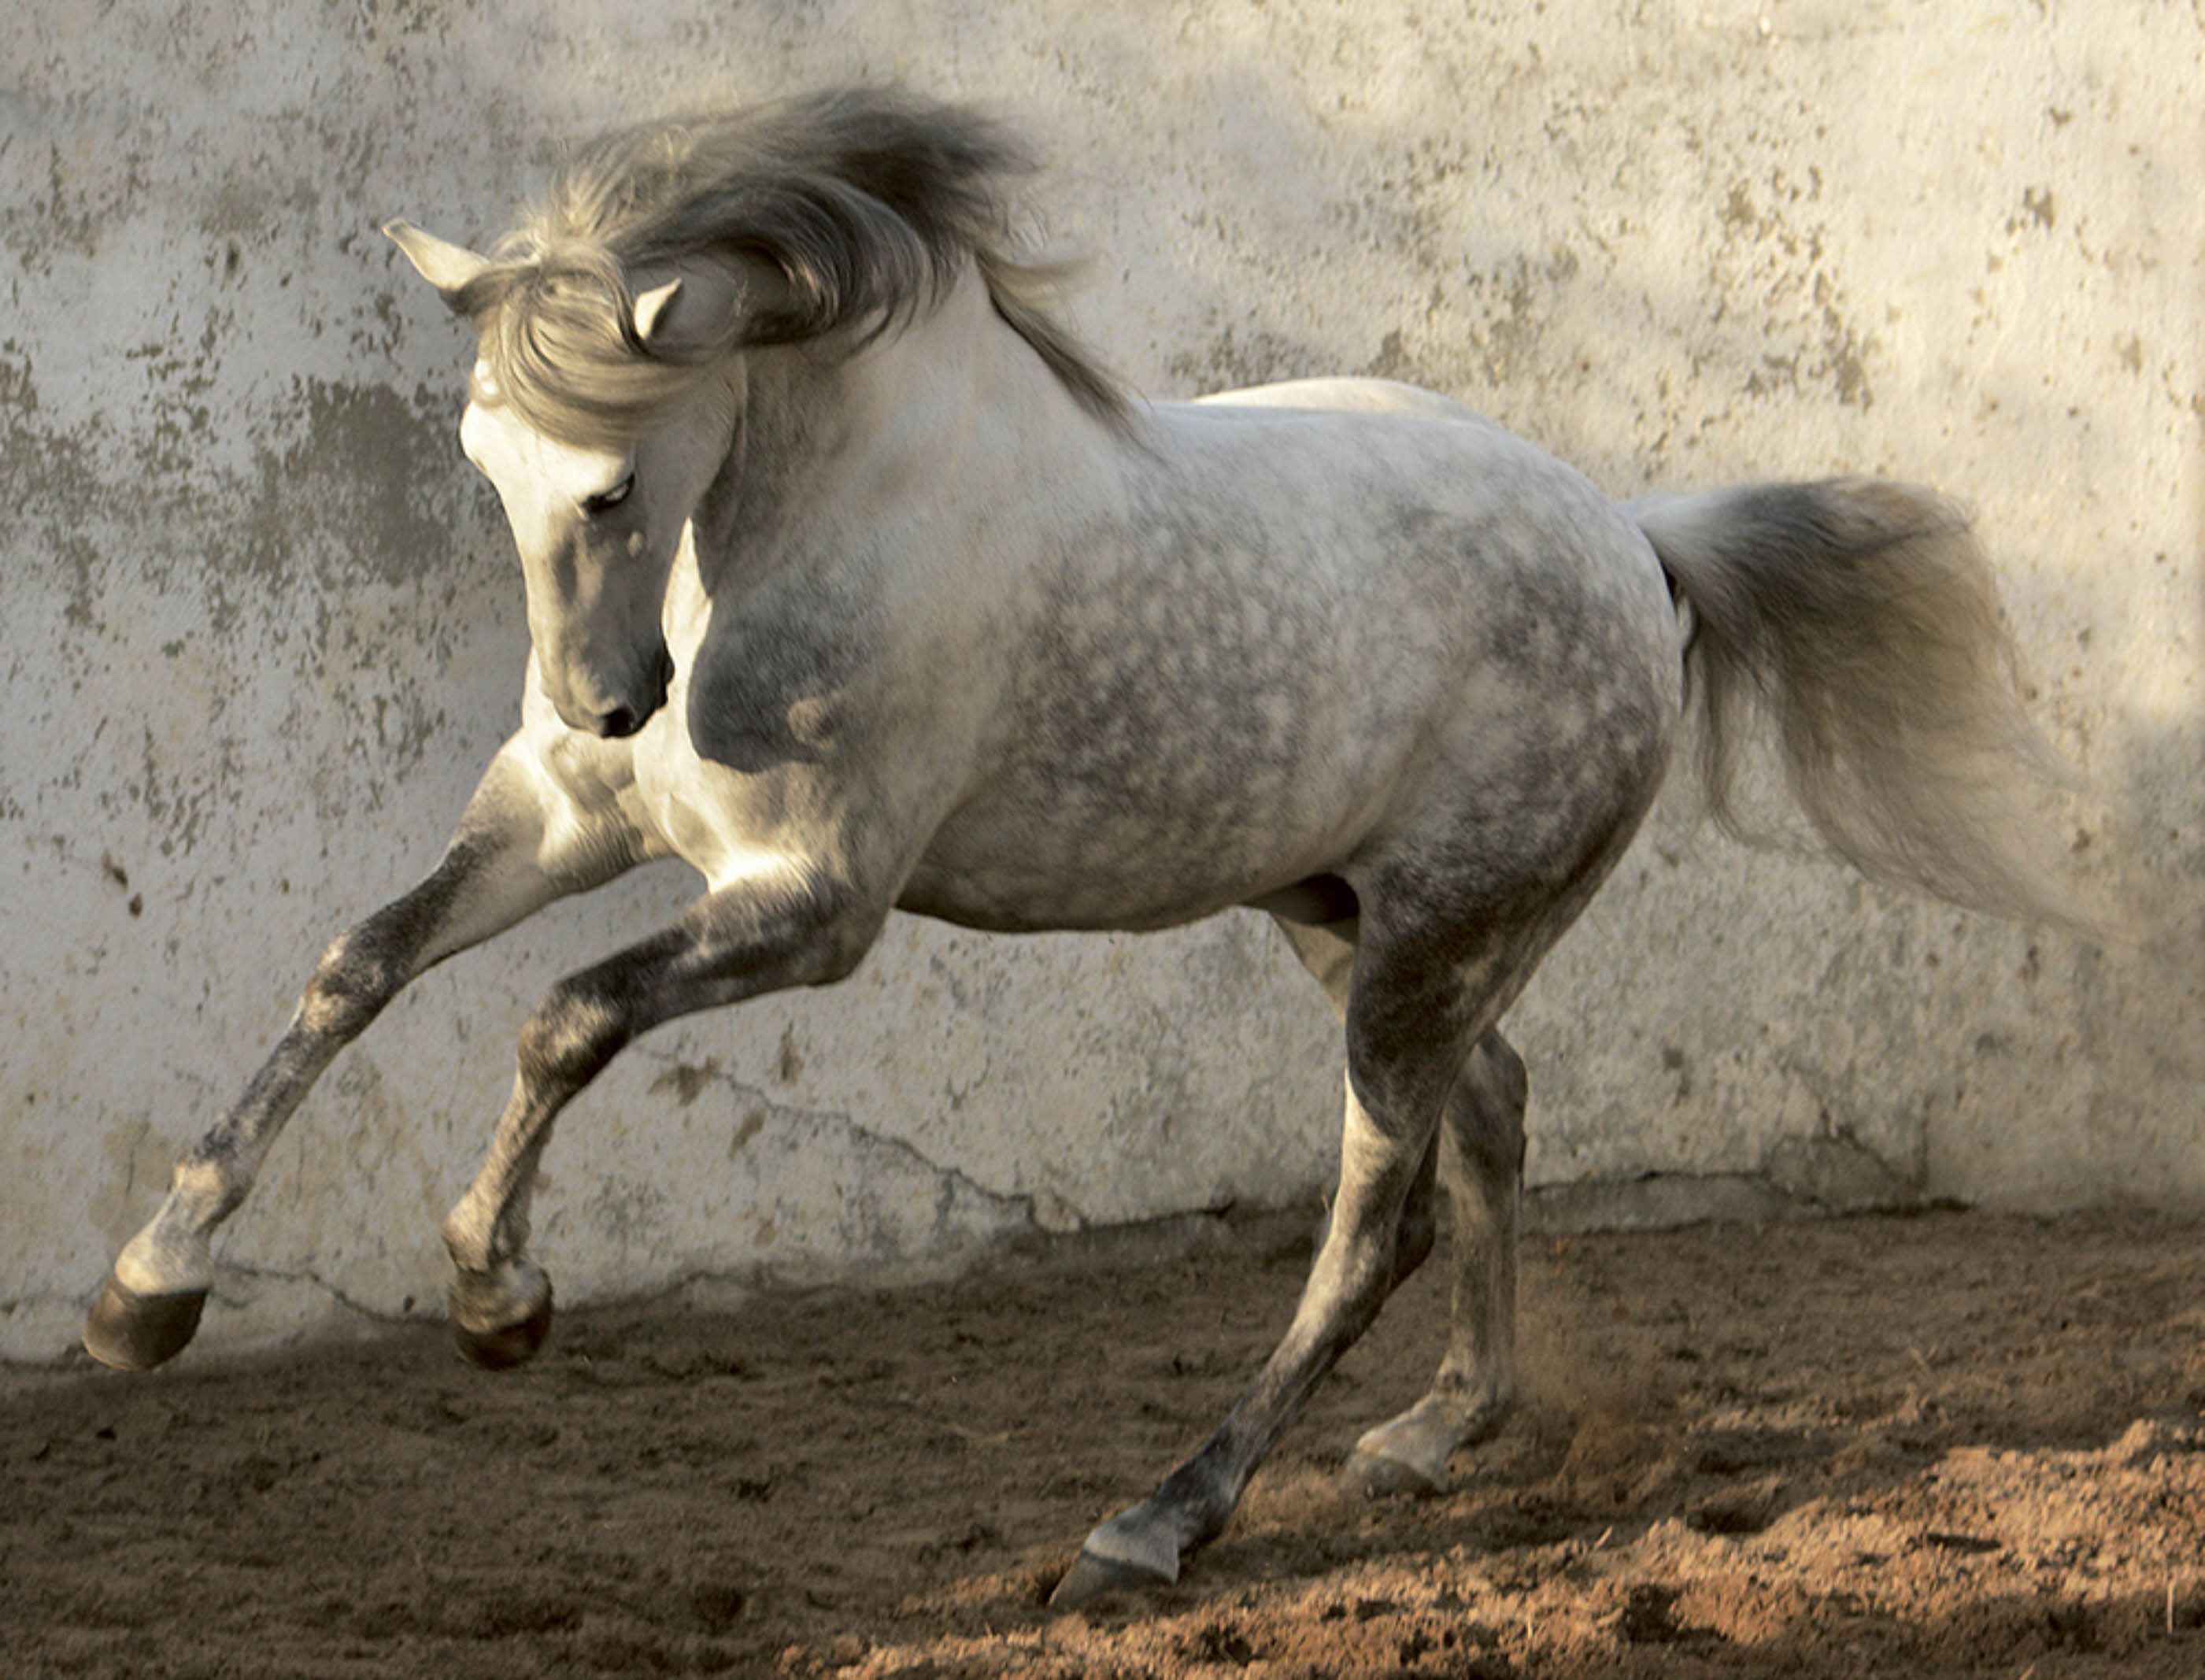 10 Powerful Action Photos Of Horses From Around The World Wanderlust